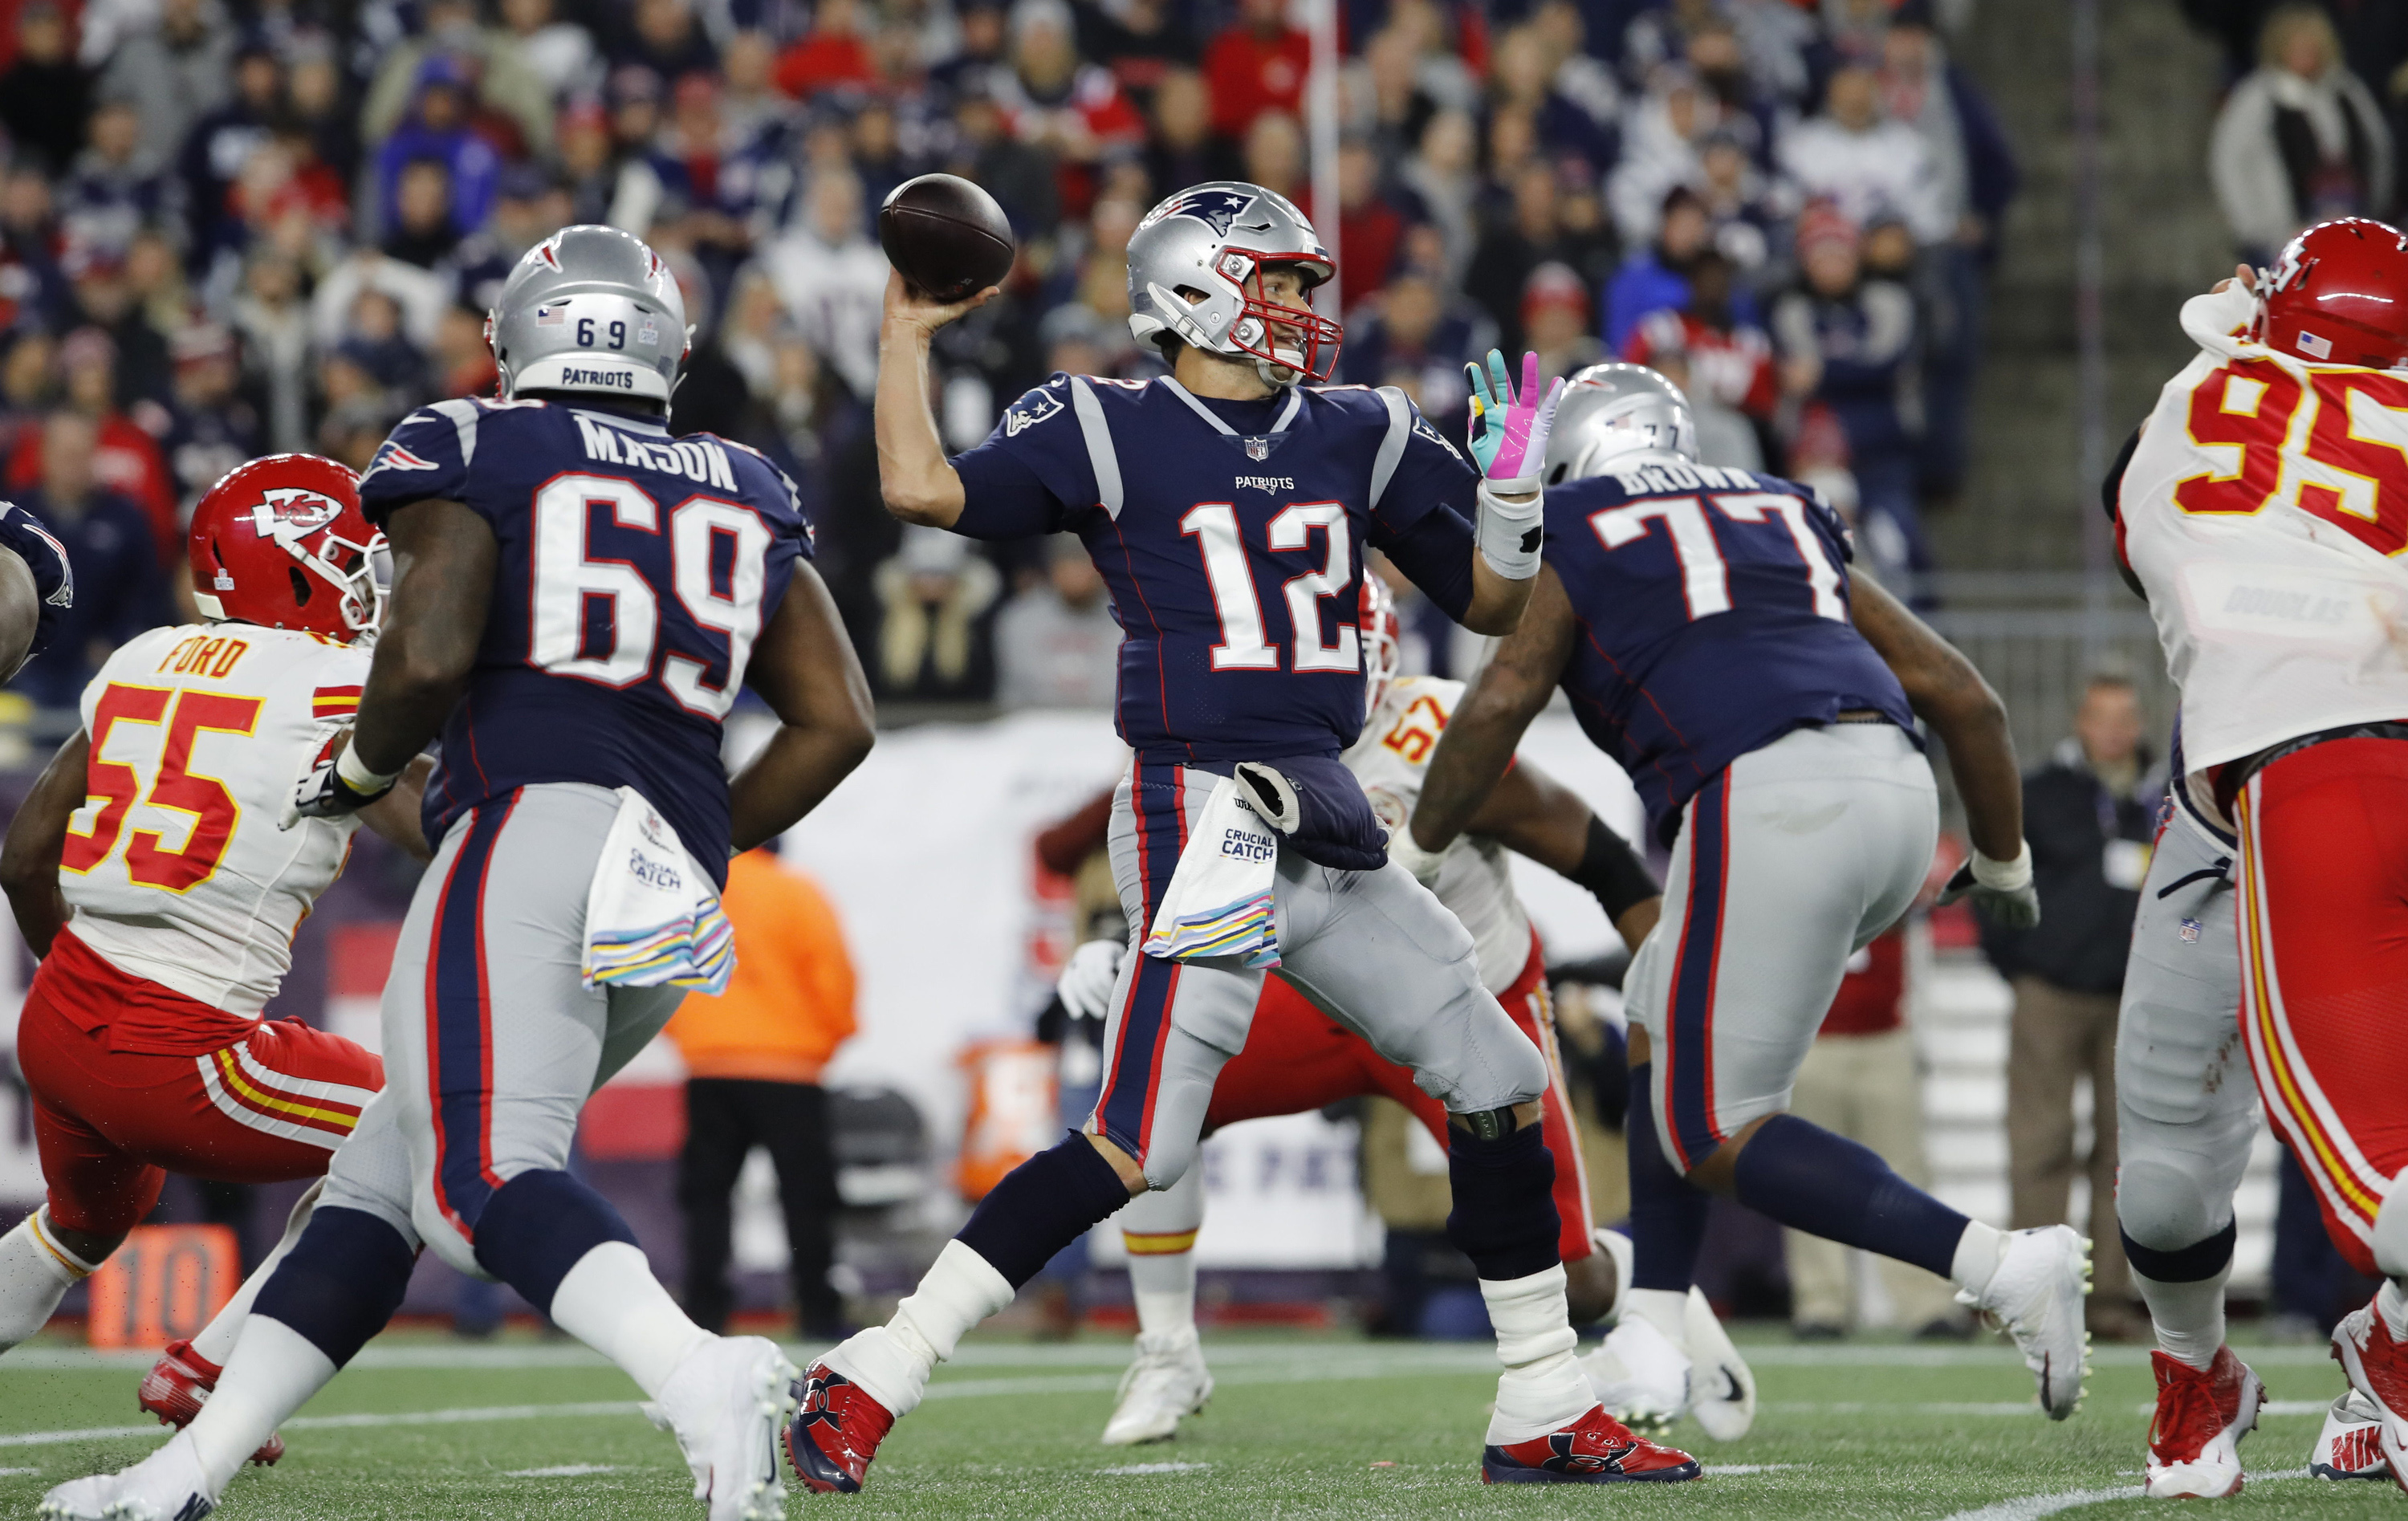 Sports US - Le point NFL : Les Patriots sont lancés